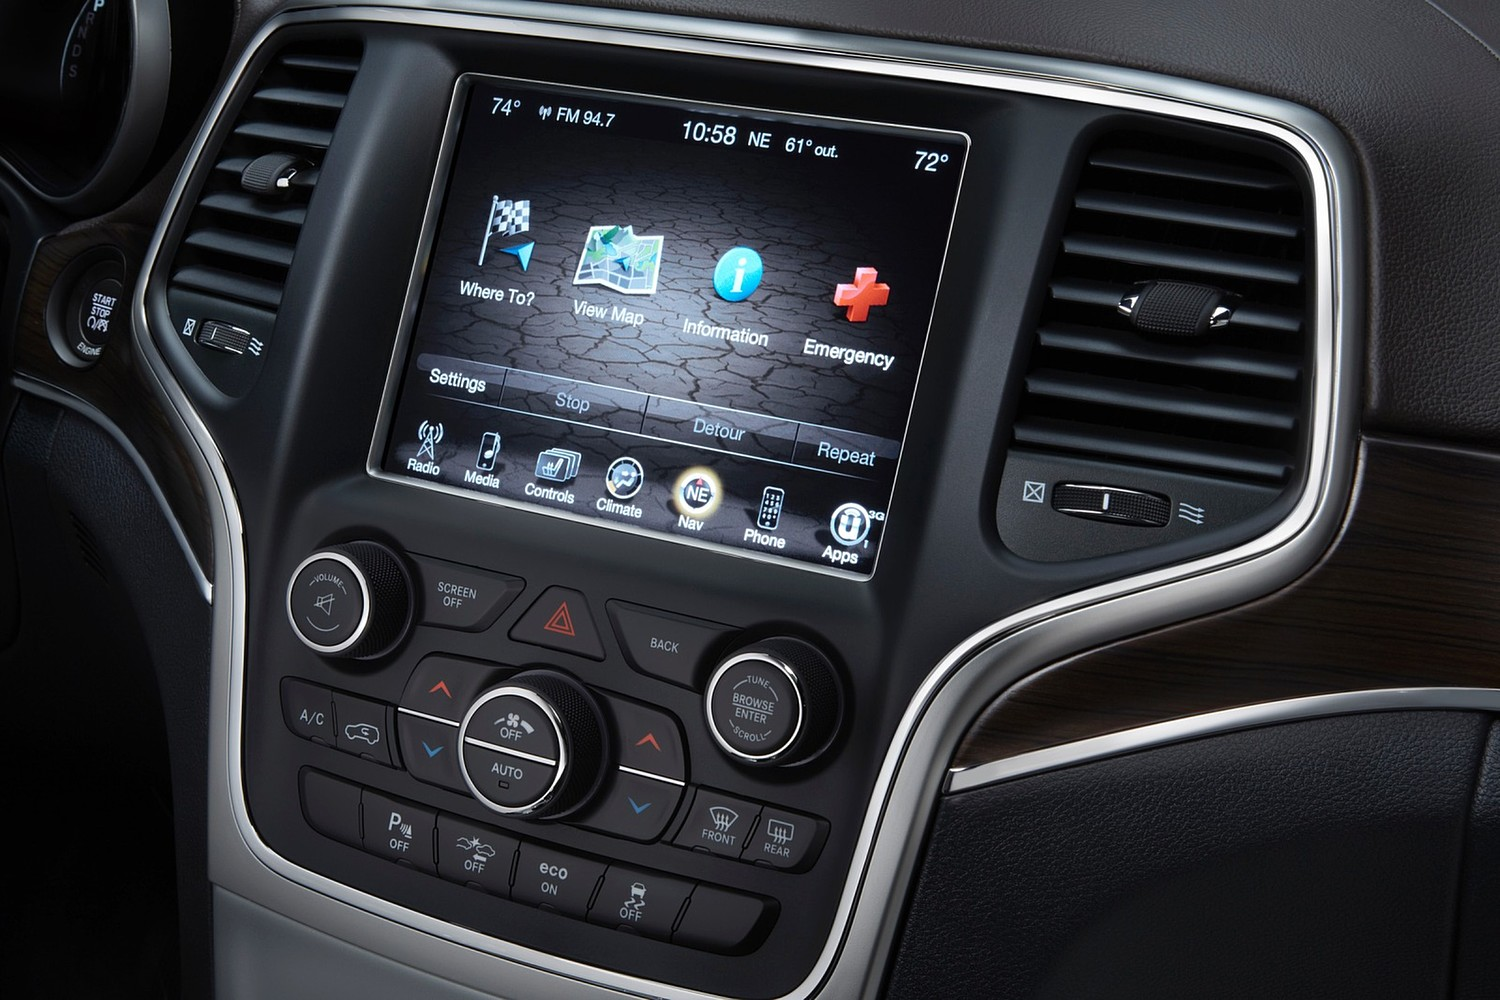 Jeep Grand Cherokee Summit 4dr SUV Center Console (2015 model year shown)